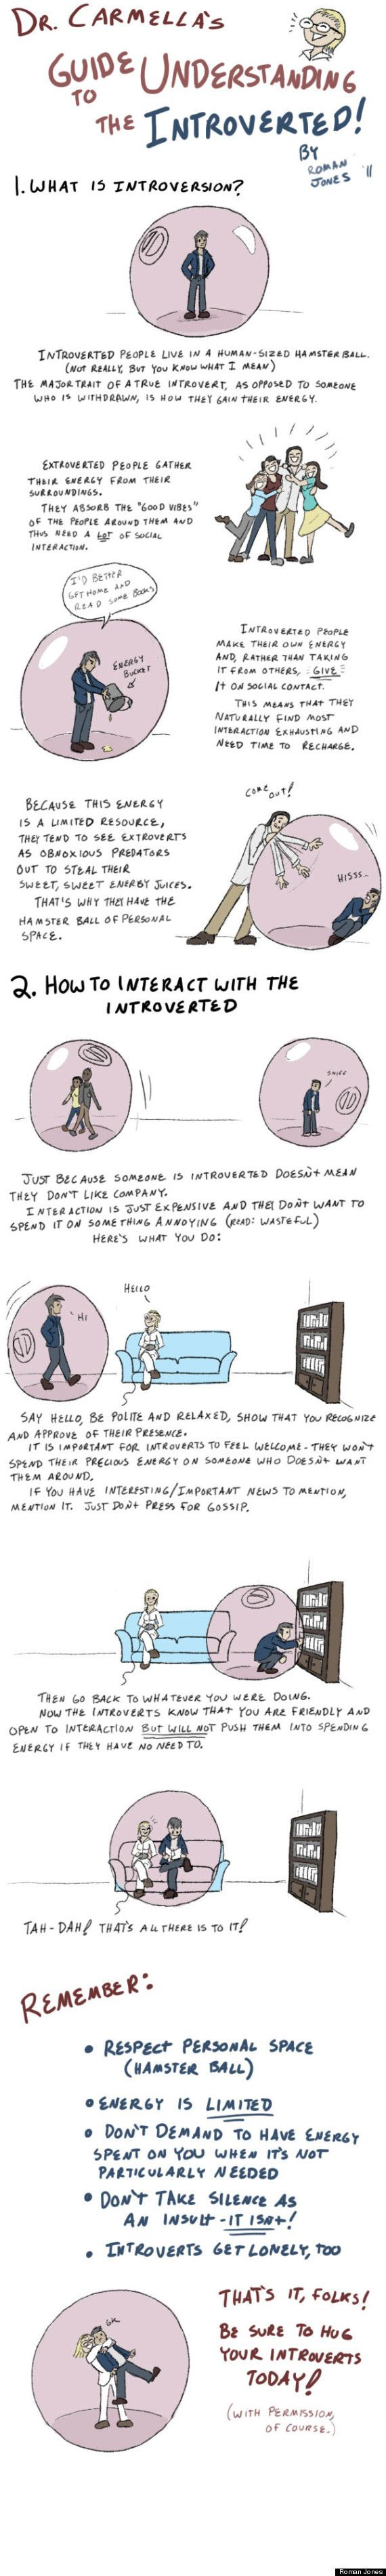 How To Understand An Introvert, In One Chart